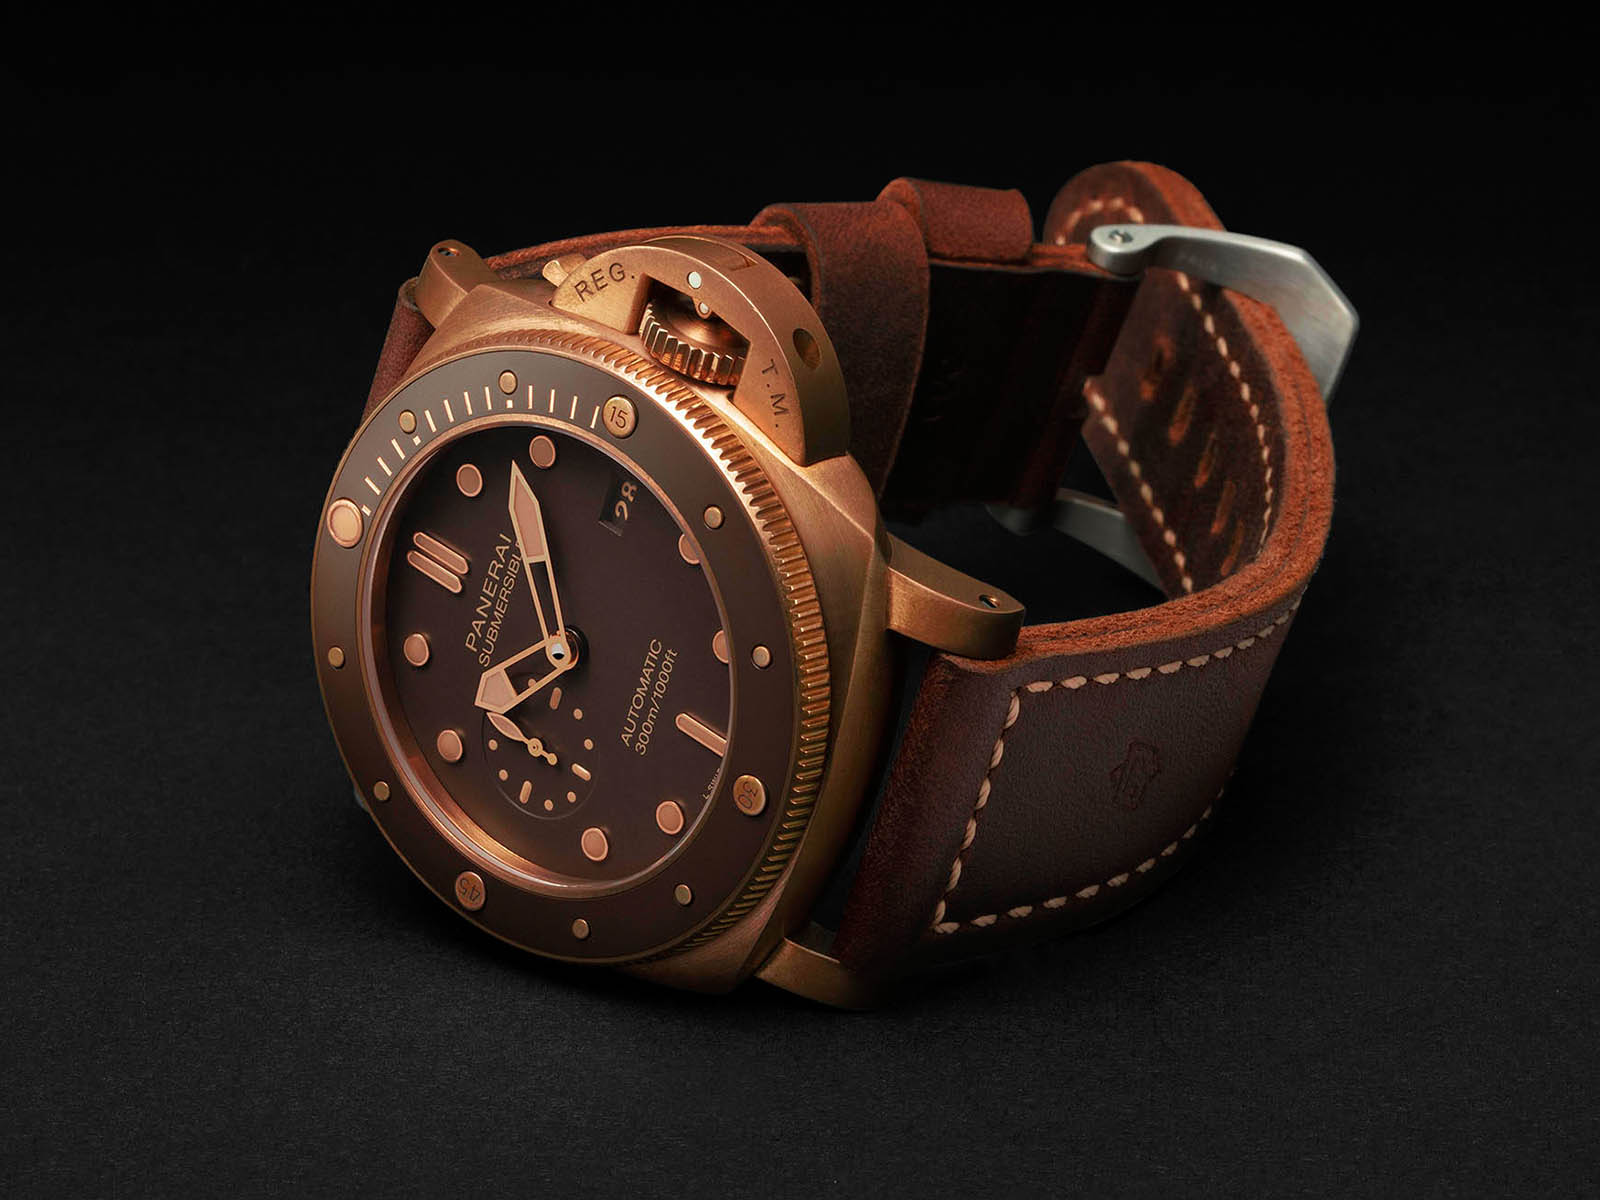 pam00968-officine-panerai-submersible-bronzo-47mm-2.jpg